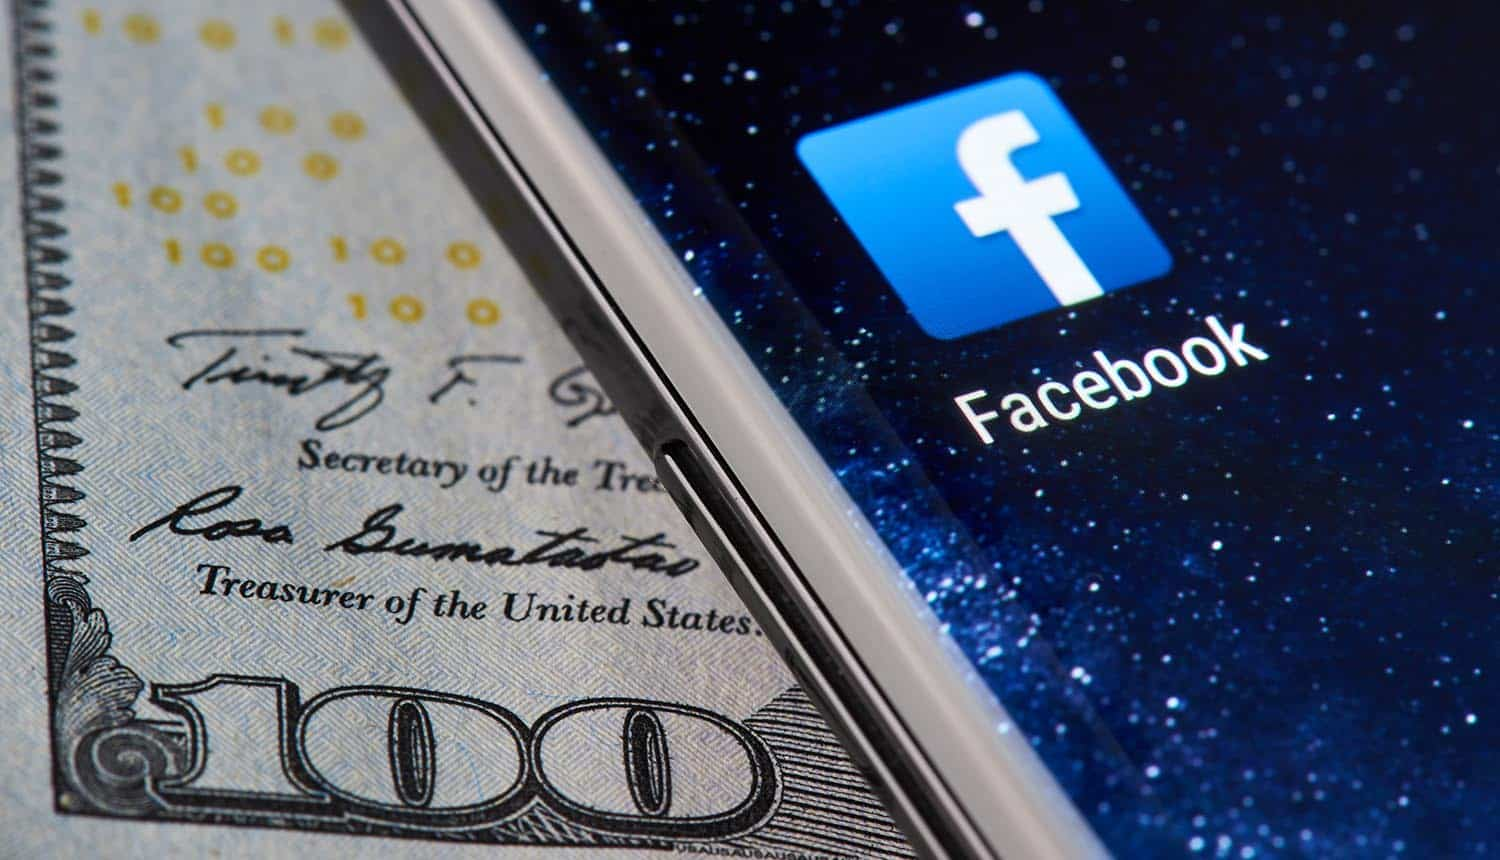 Facebook icon app on smartphone close-up on dollar currency